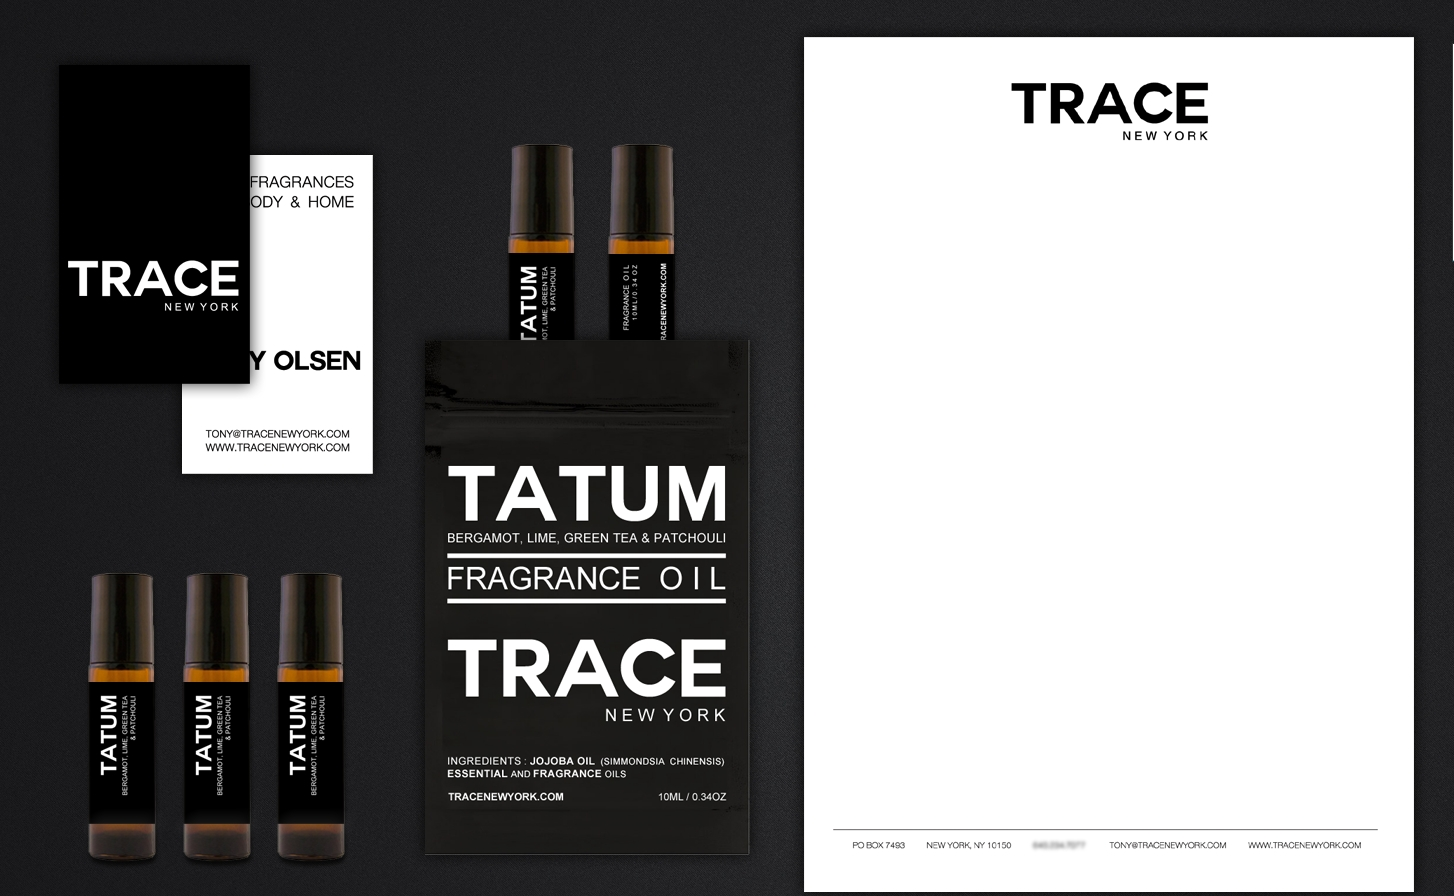 TRACE New York Brand Collateral